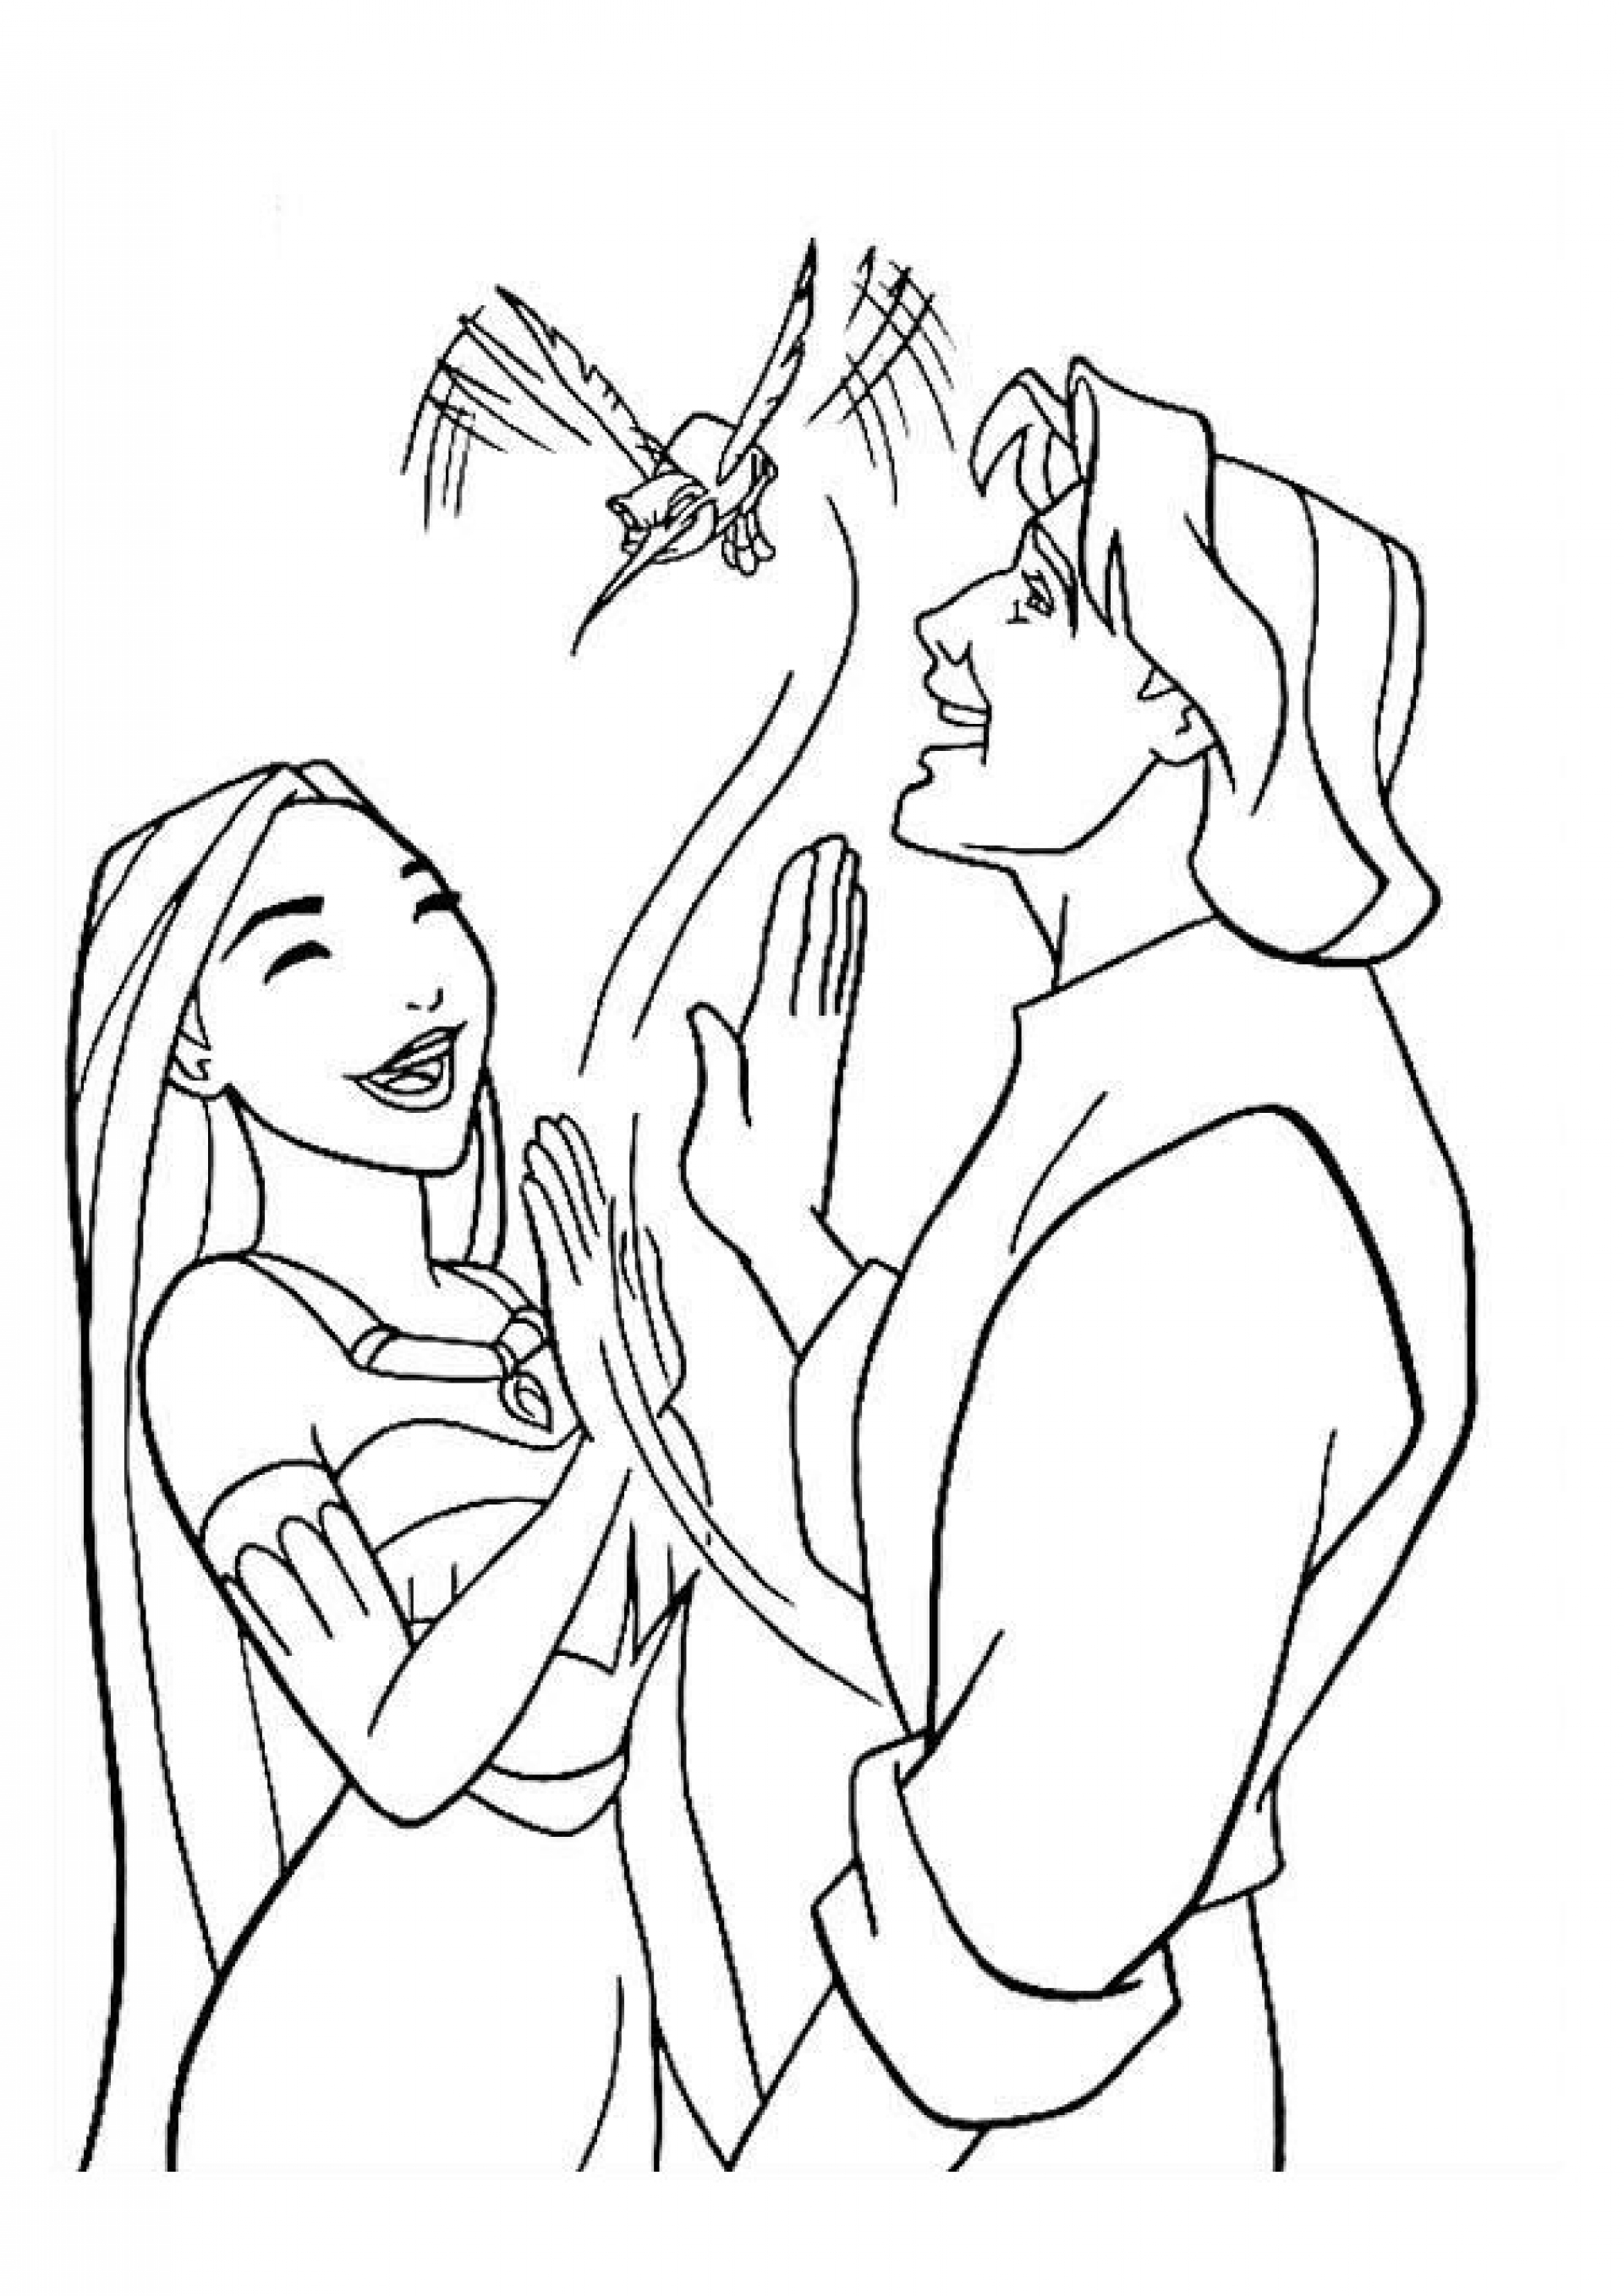 Coloring Pages Disney Pocahontas Coloring Pages printable pocahontas coloring pages me sheets